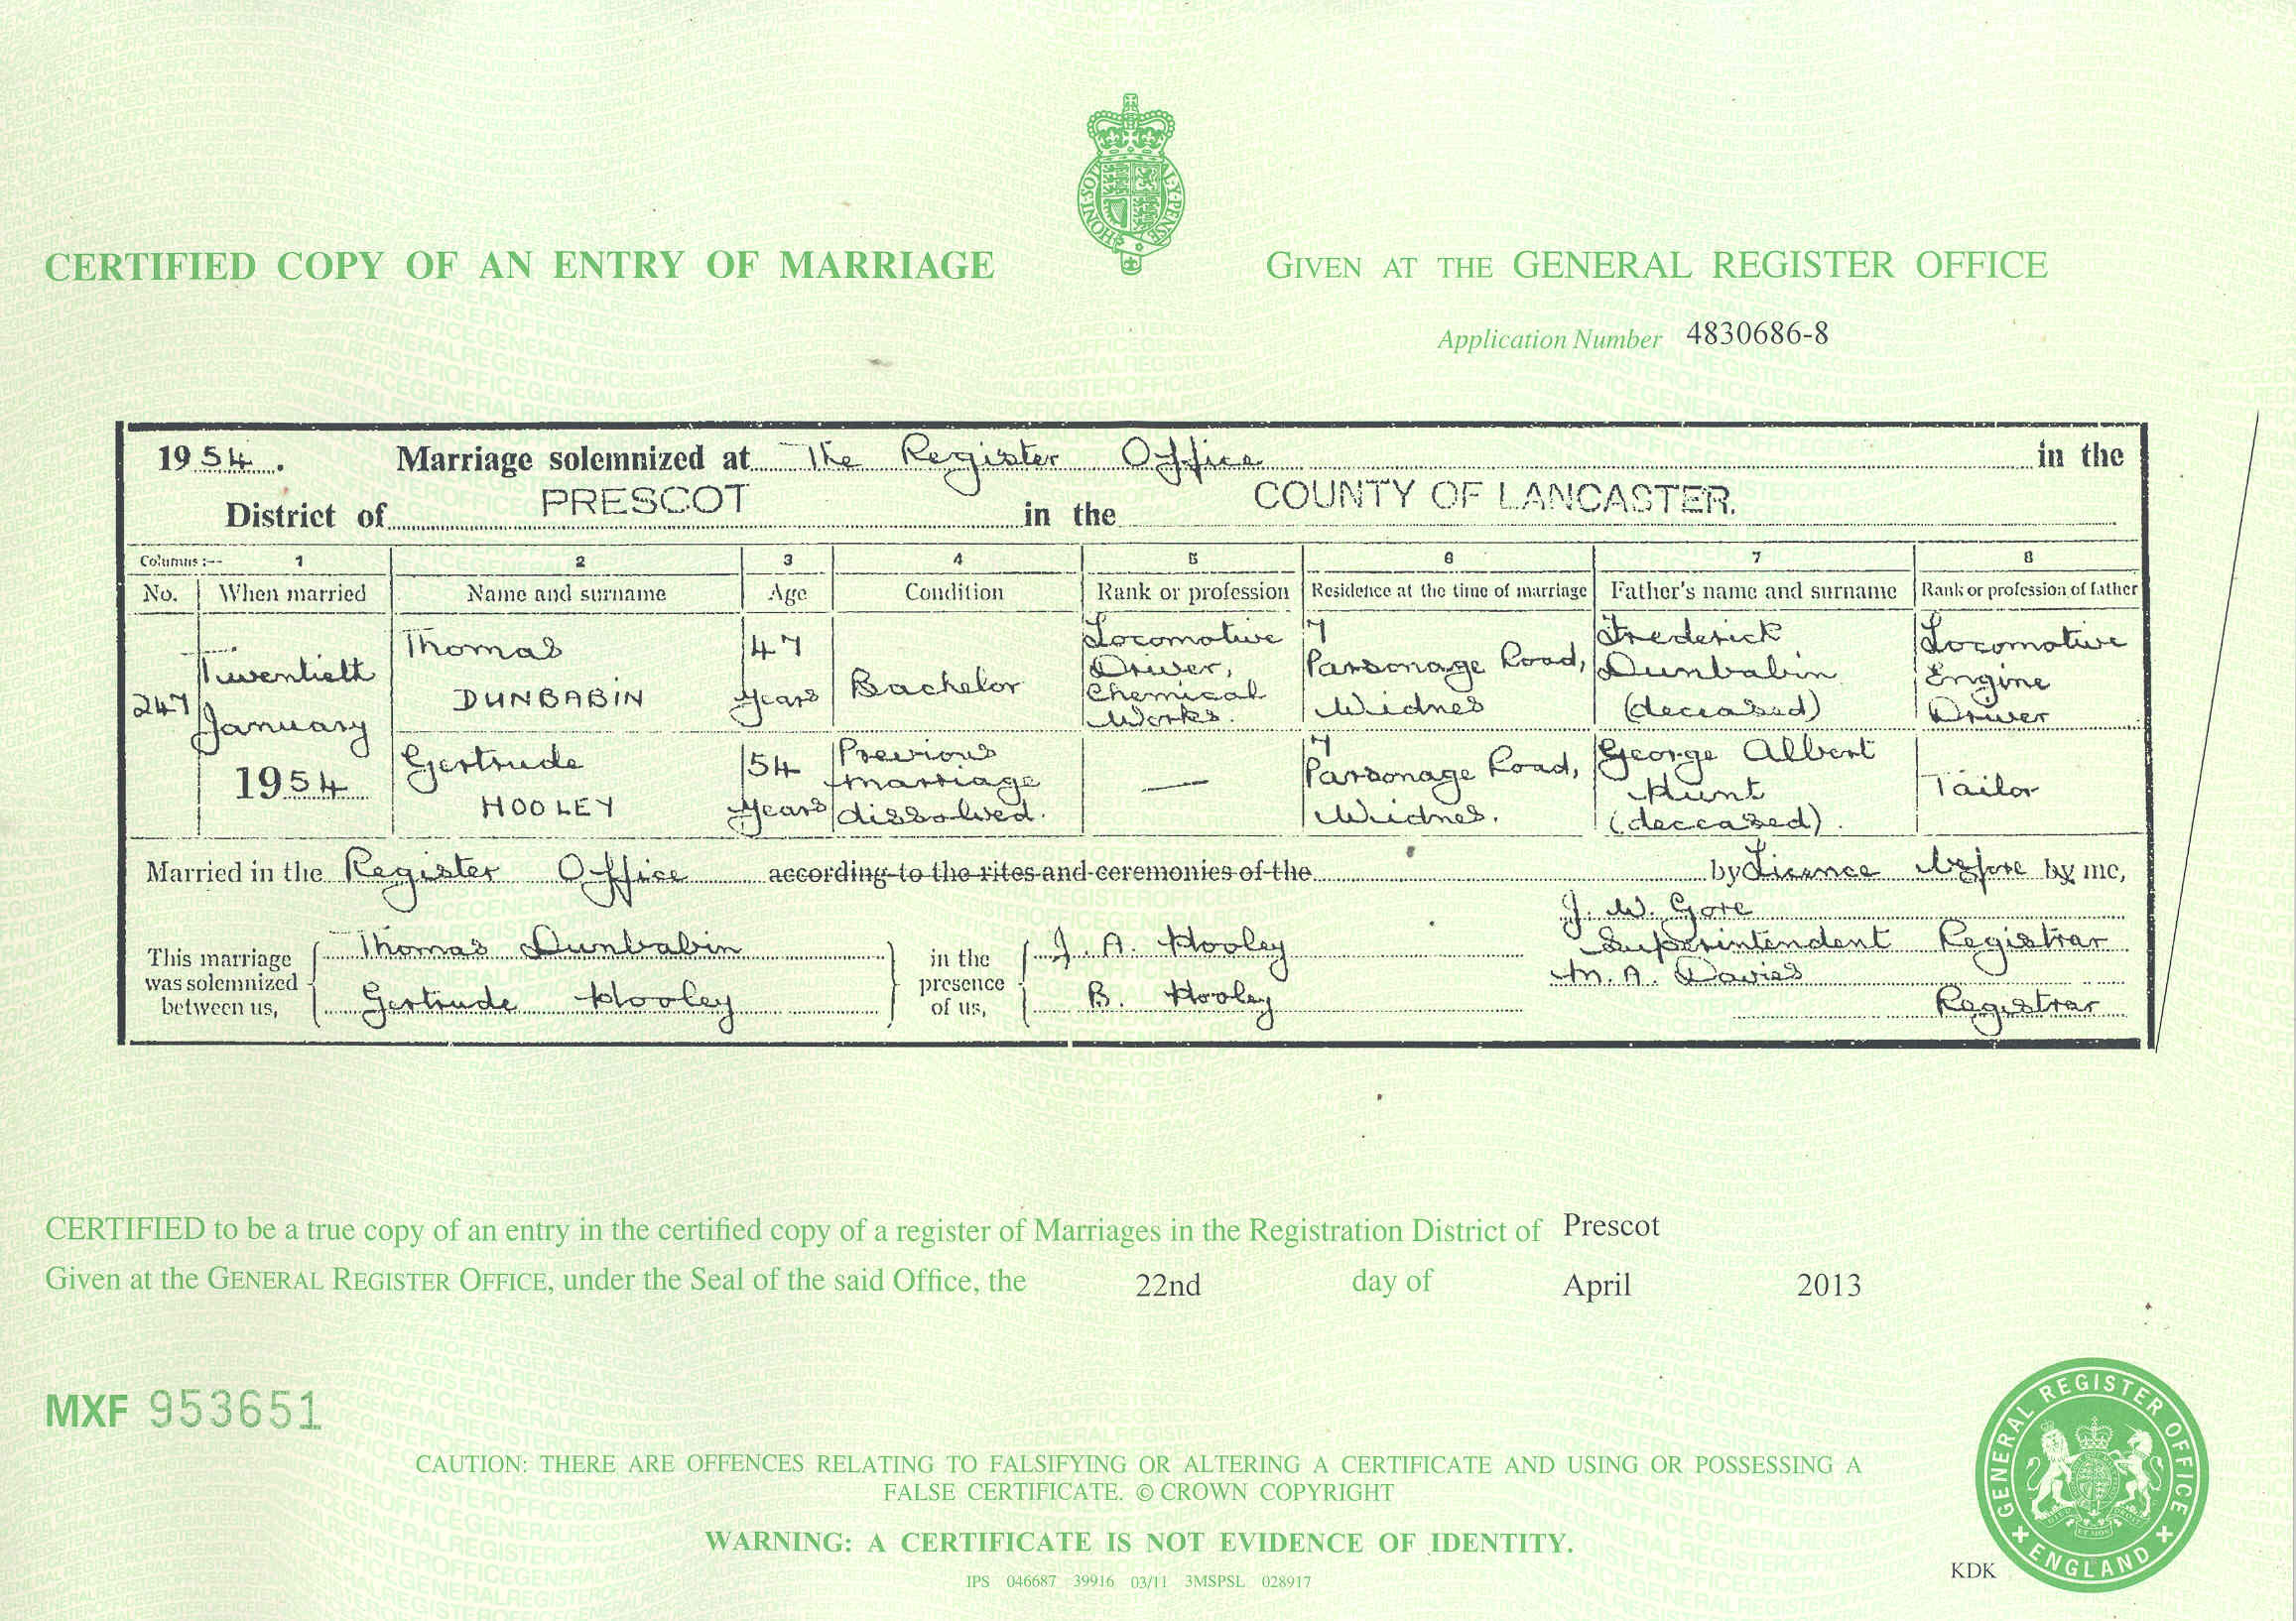 Donbavand certificates dunbabin thomas hooley gertrude marriage 1954g xflitez Gallery